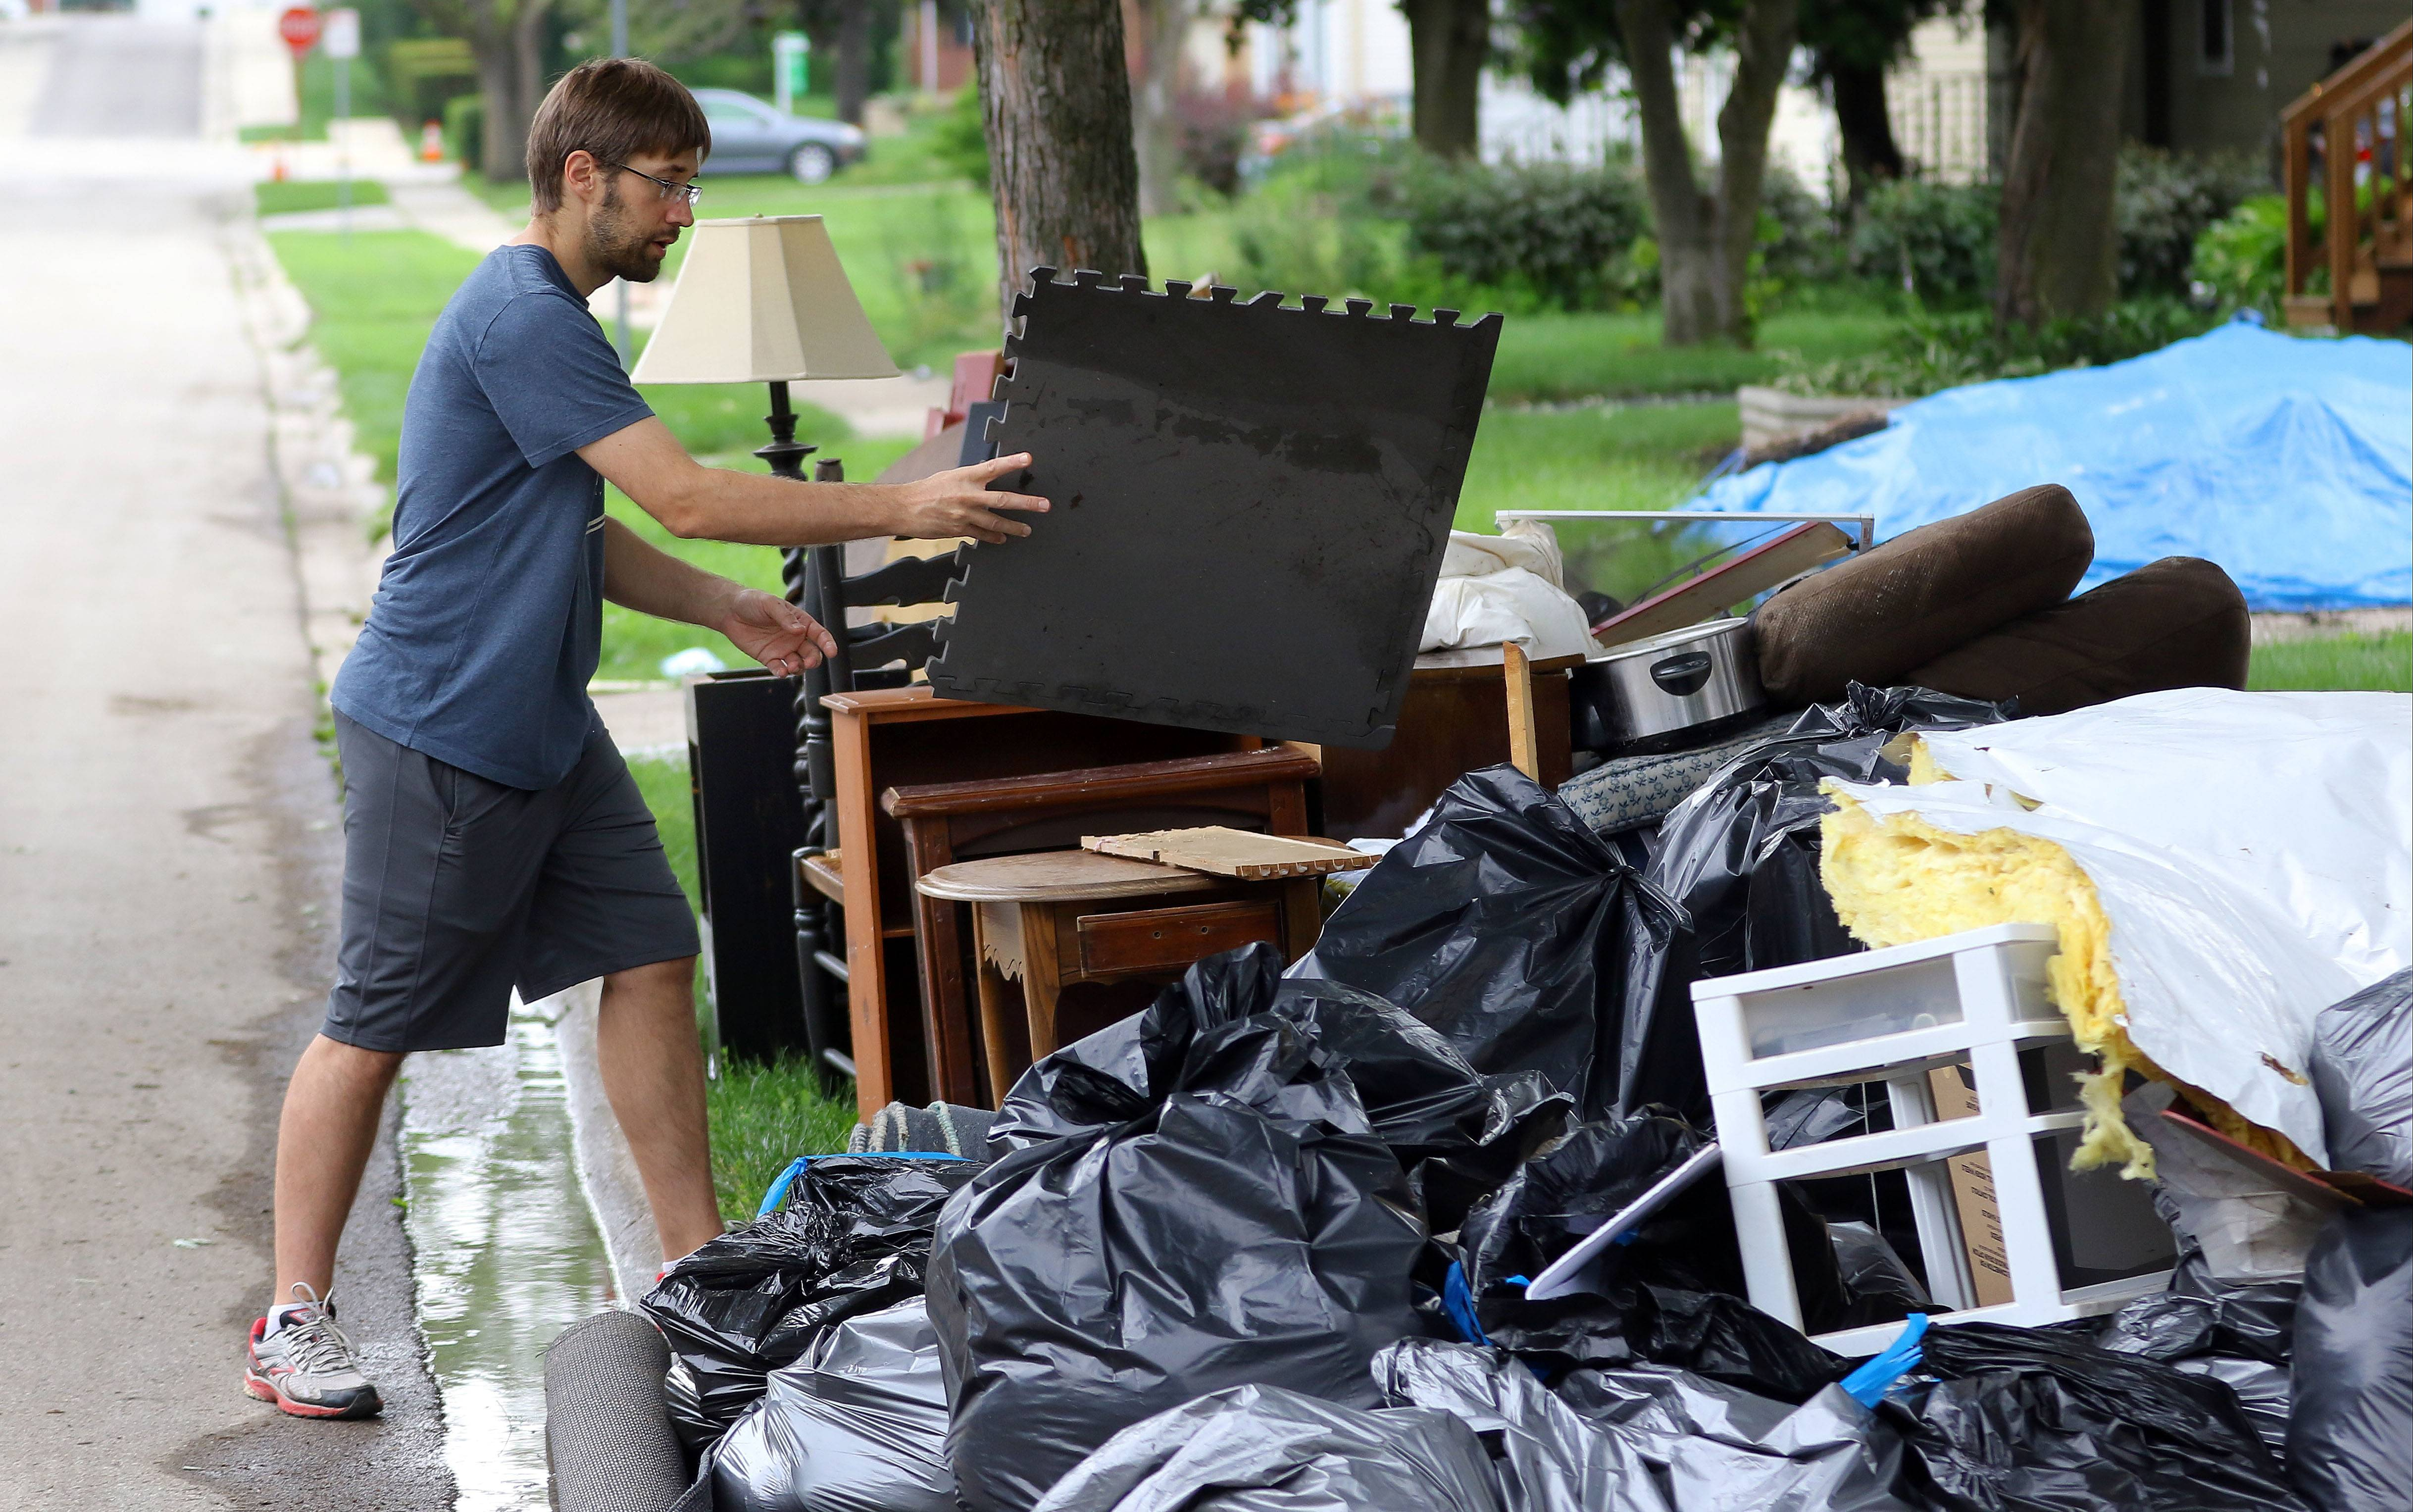 Chris Walter of Mundelein throws out flooded items from his basement last month. Village officials may hire consultants to study why parts of Mundelein flooded July 12 and how to prevent it from happening again.